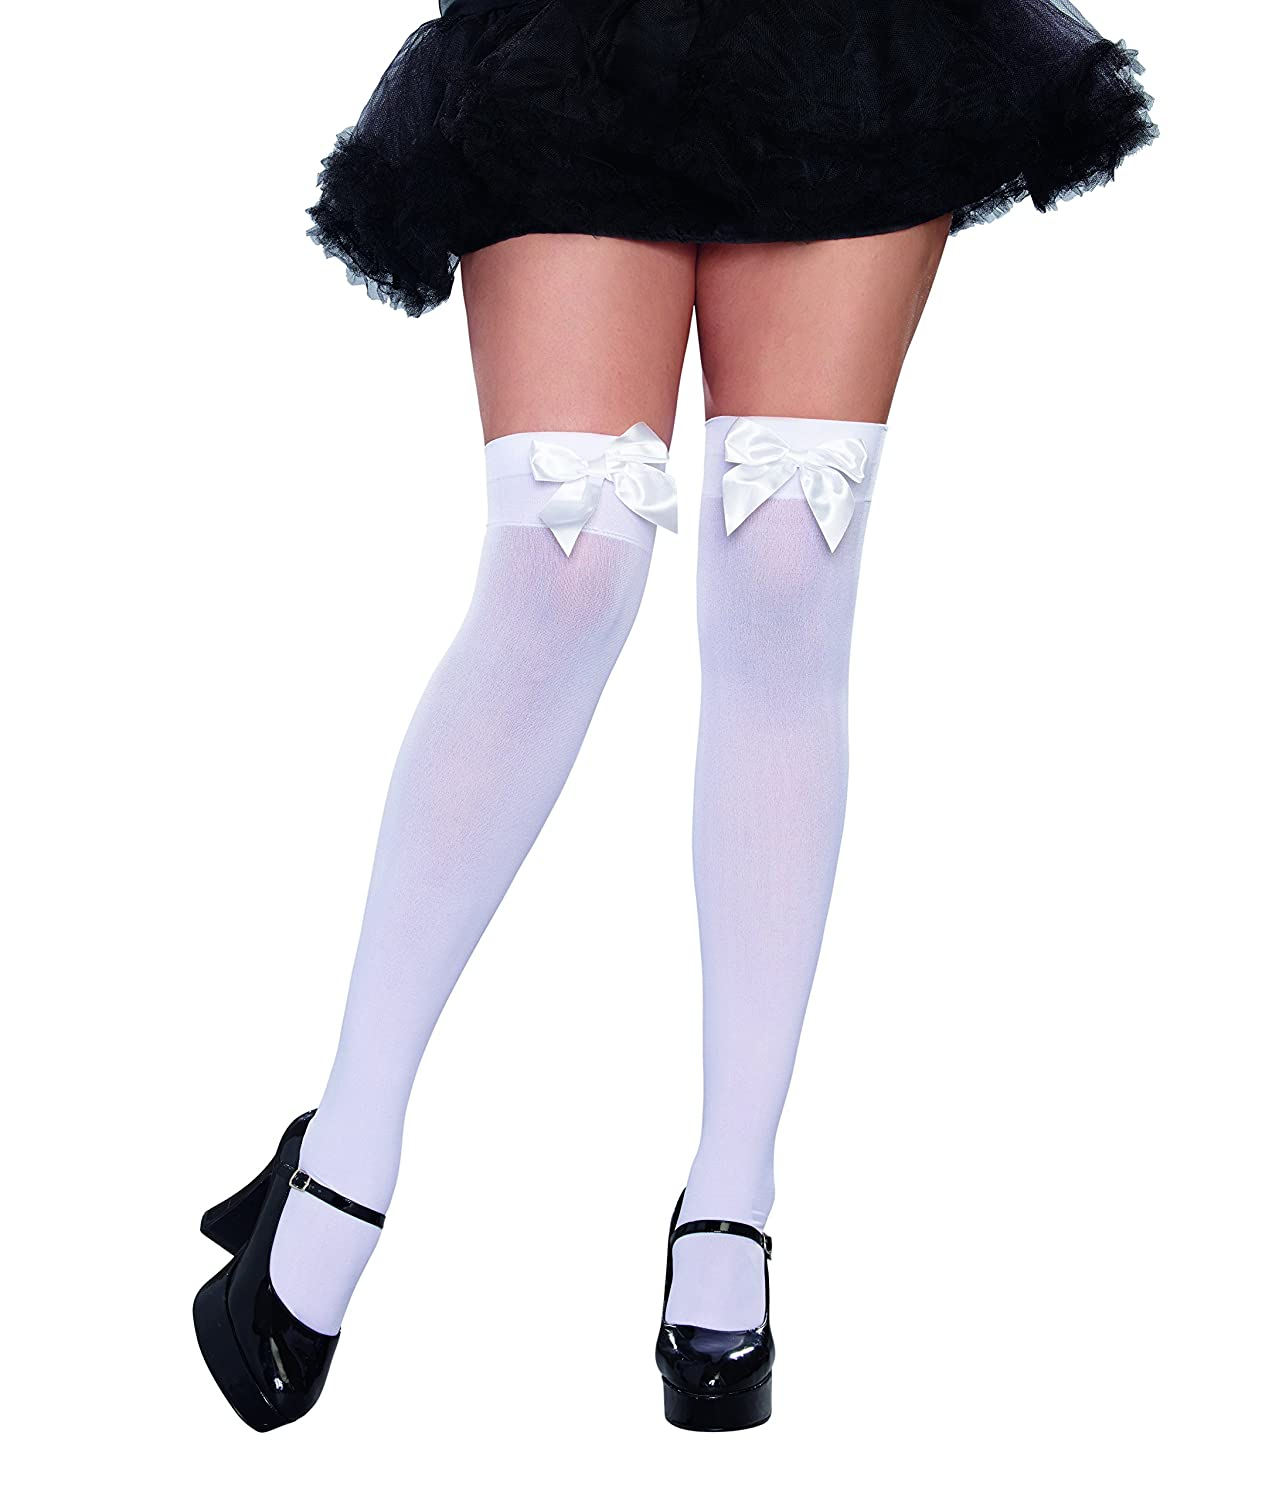 Dreamgirl Women's Plus Size Bow Top Stockings Black One Queen Dreamgirl International 10342X